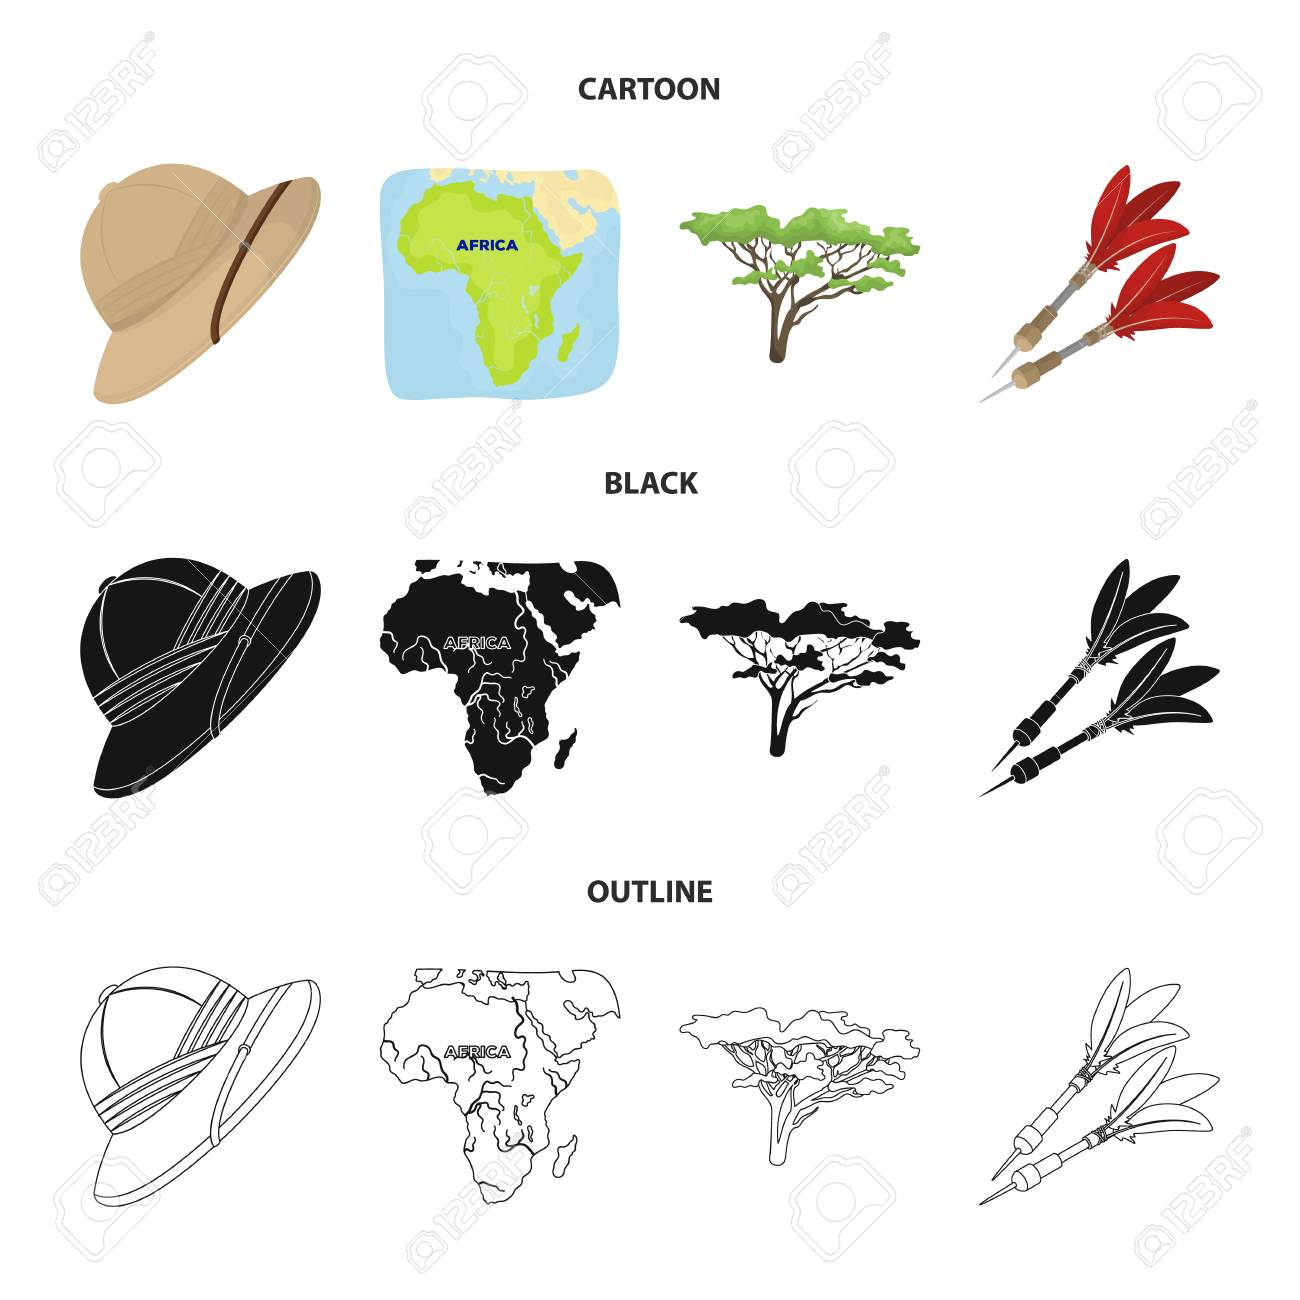 Hat Darts Tree And Africa Map Icons In Cartoon Black And Outline Royalty Free Cliparts Vectors And Stock Illustration Image 100331399 Well you're in luck, because here they come. 123rf com